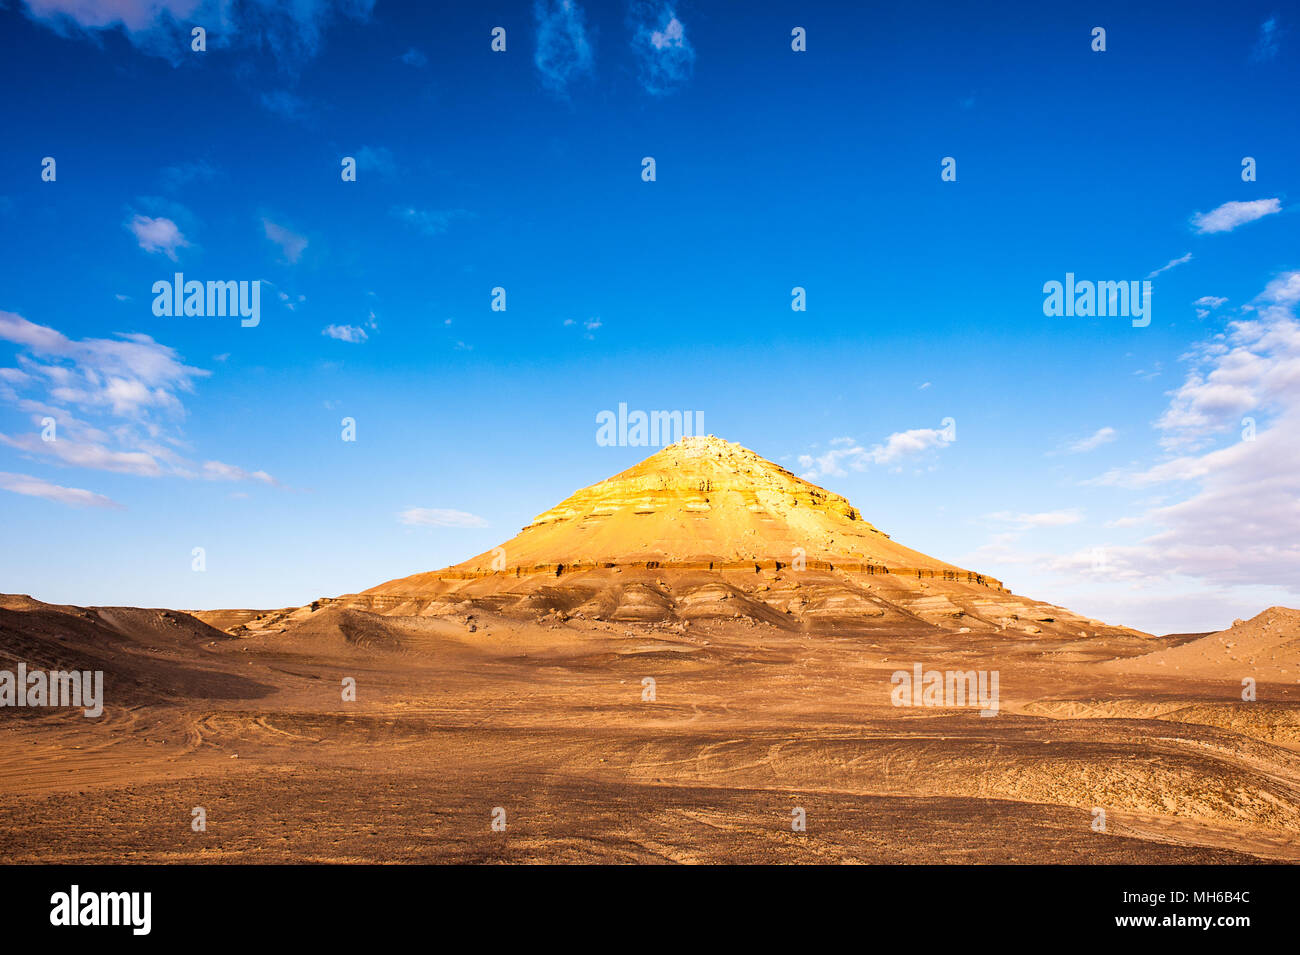 Rock near the Bahariya Oasis in the Sahara Desert in Egypt - Stock Image